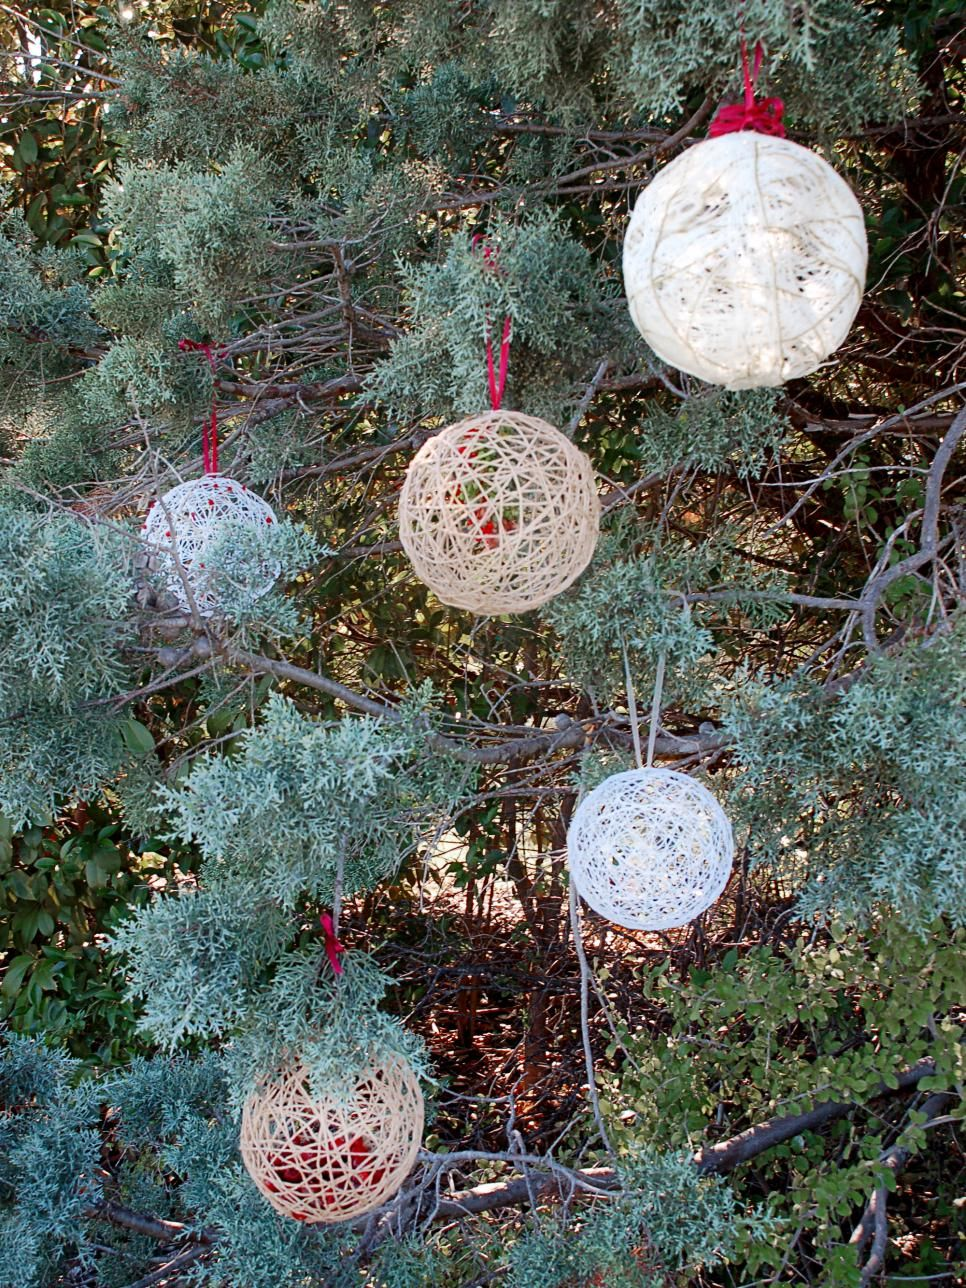 35 crafty outdoor holiday decorating ideas front door wreaths 35 crafty outdoor holiday decorating ideas solutioingenieria Image collections